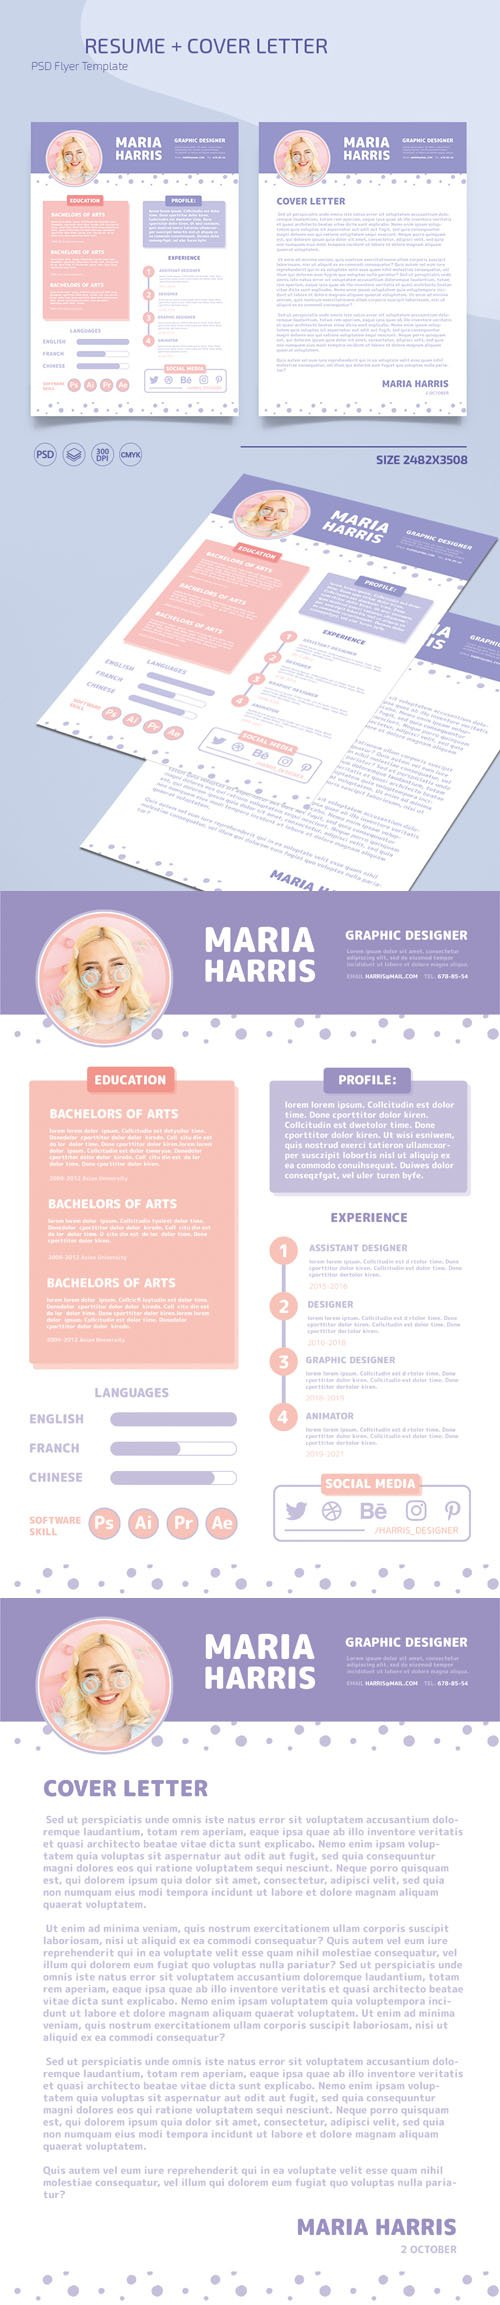 Cute Resume + Cover Letter PSD Templates